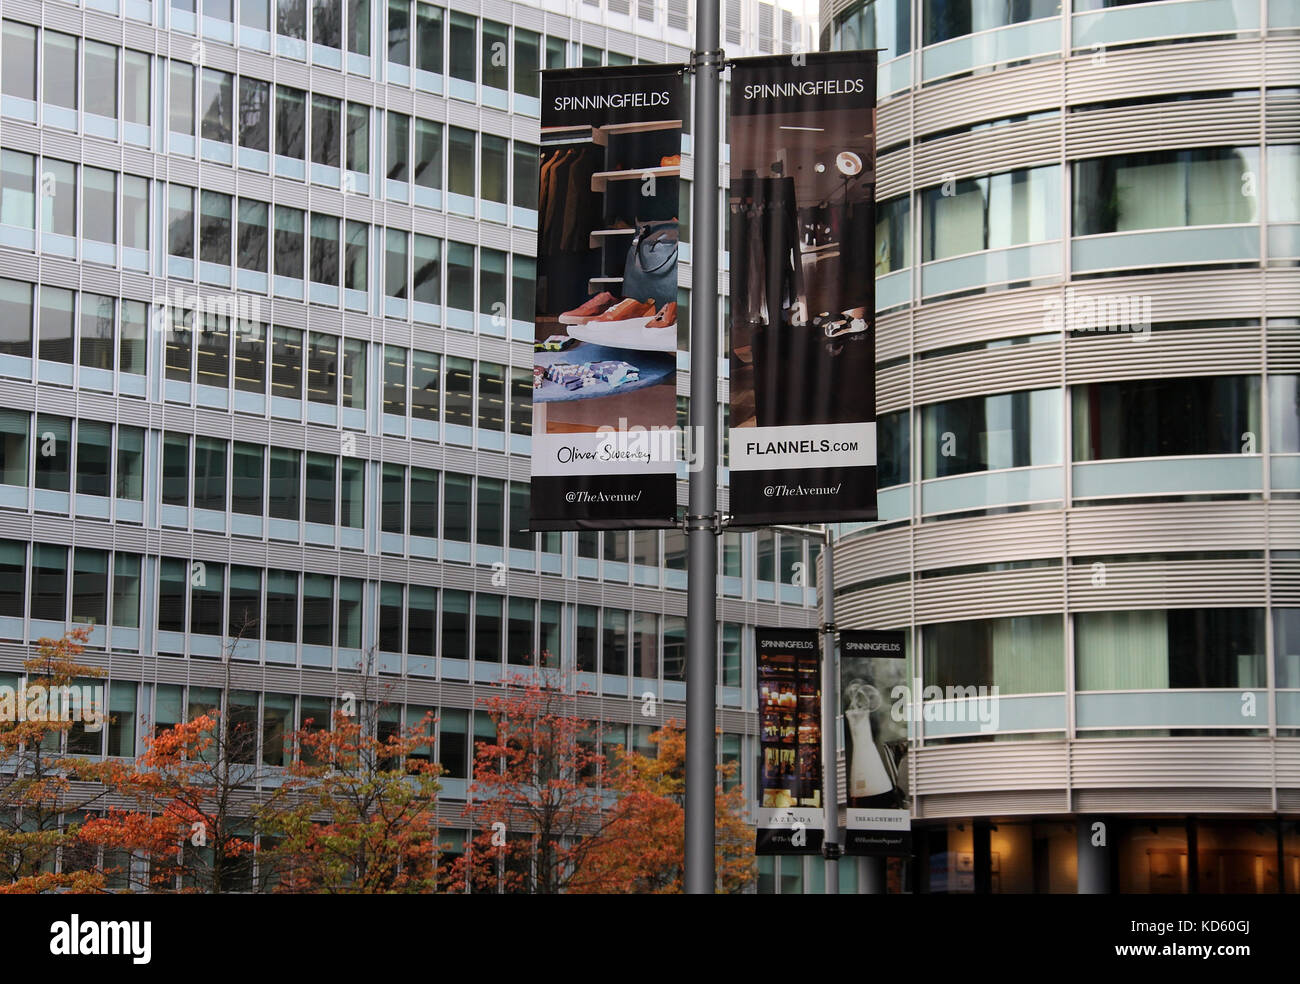 Central Business District Manchester Stock Photos ...